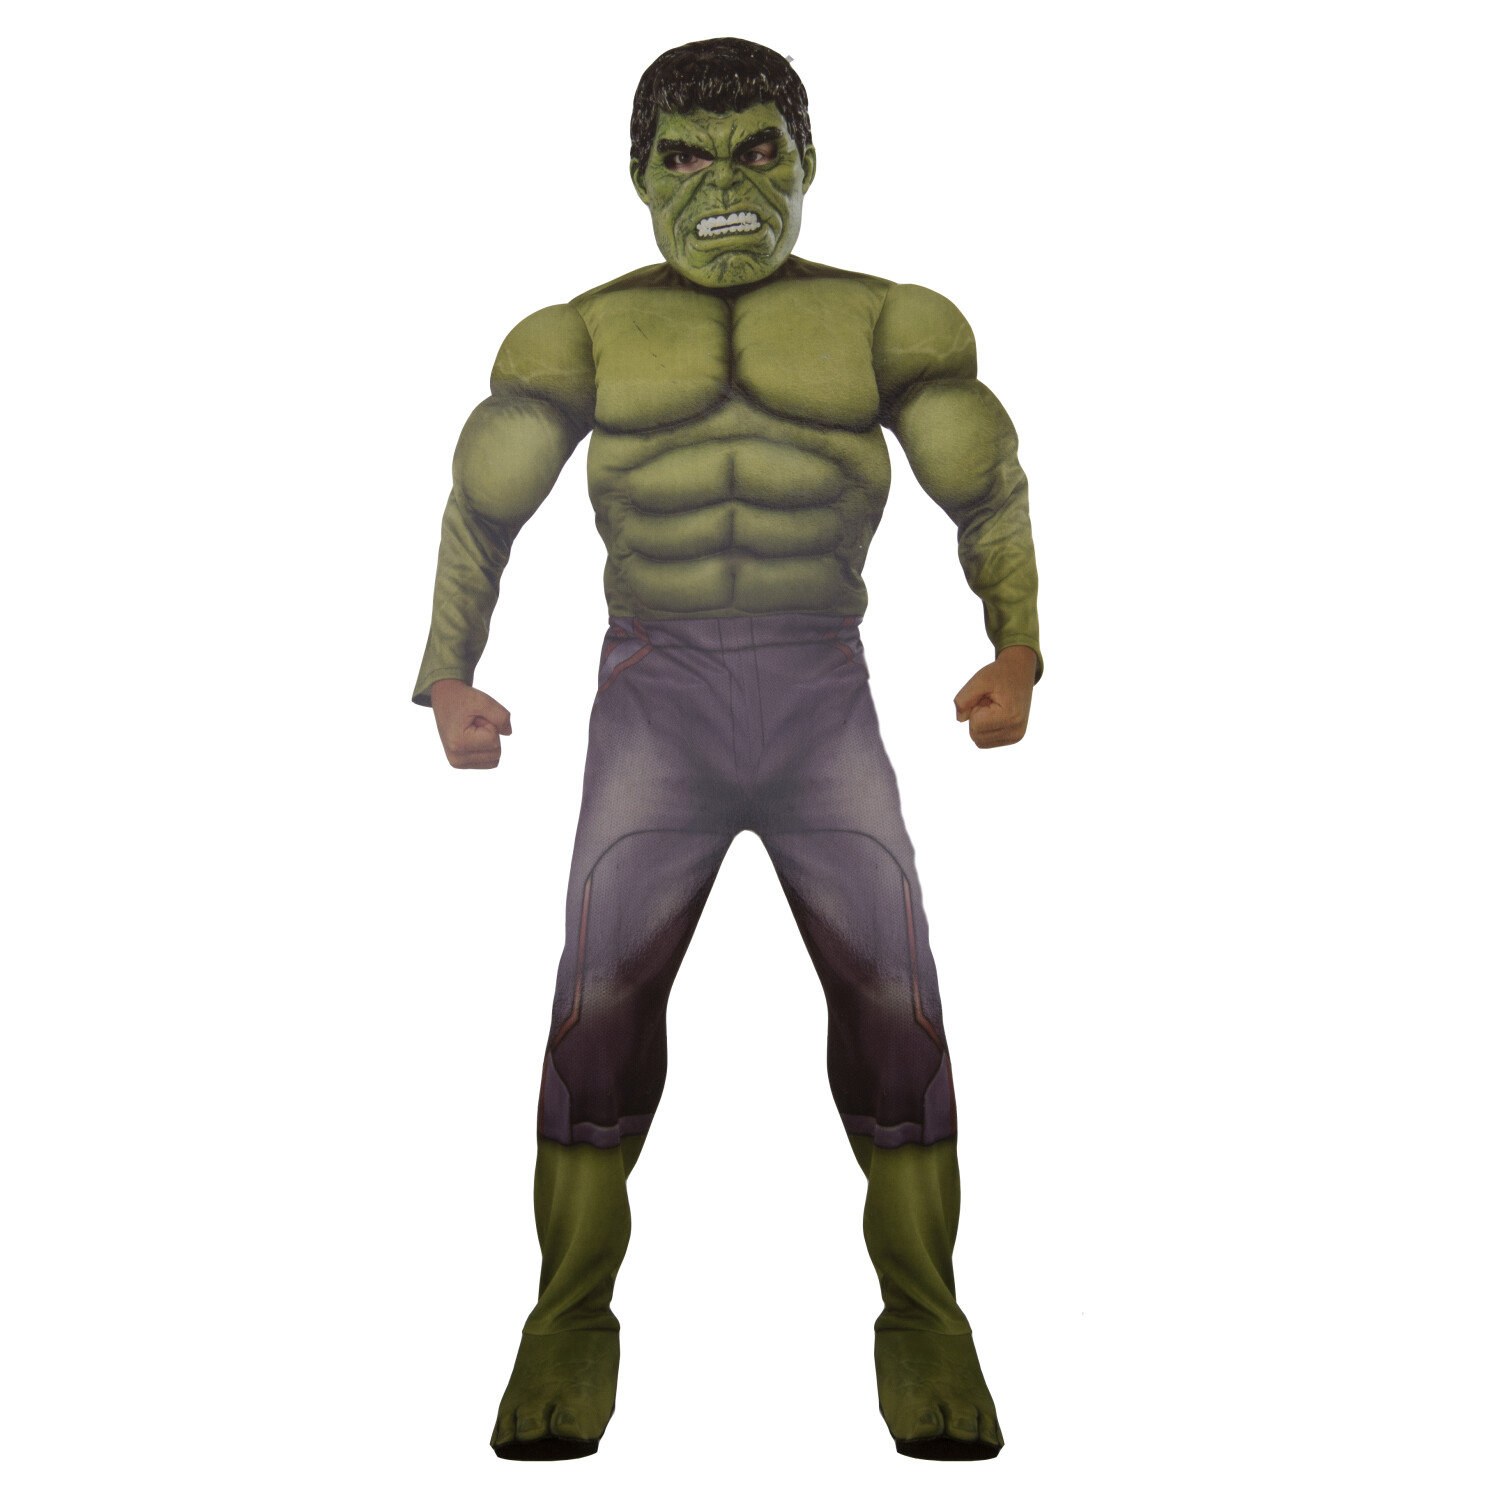 Rubies Costume Co Marvel Deluxe Hulk Avengers Age of Ultron Child Large size 10-12, Age 8-10 - L - Green